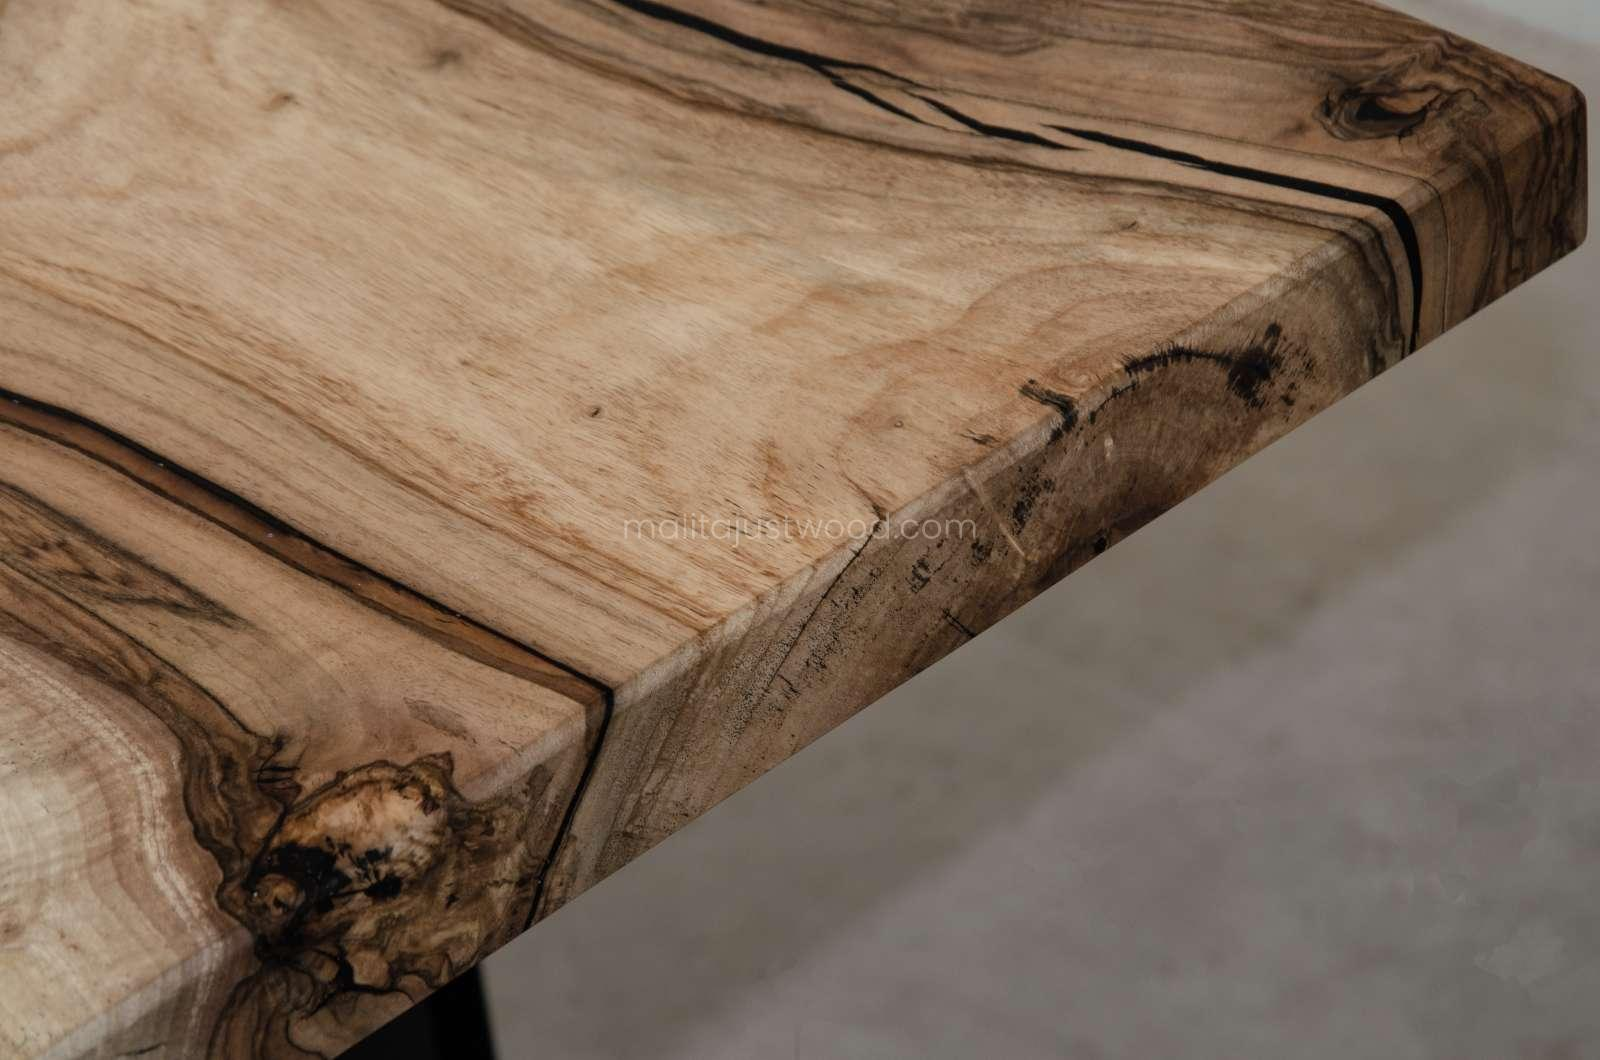 extendable table tenens made of walnut wood with resin